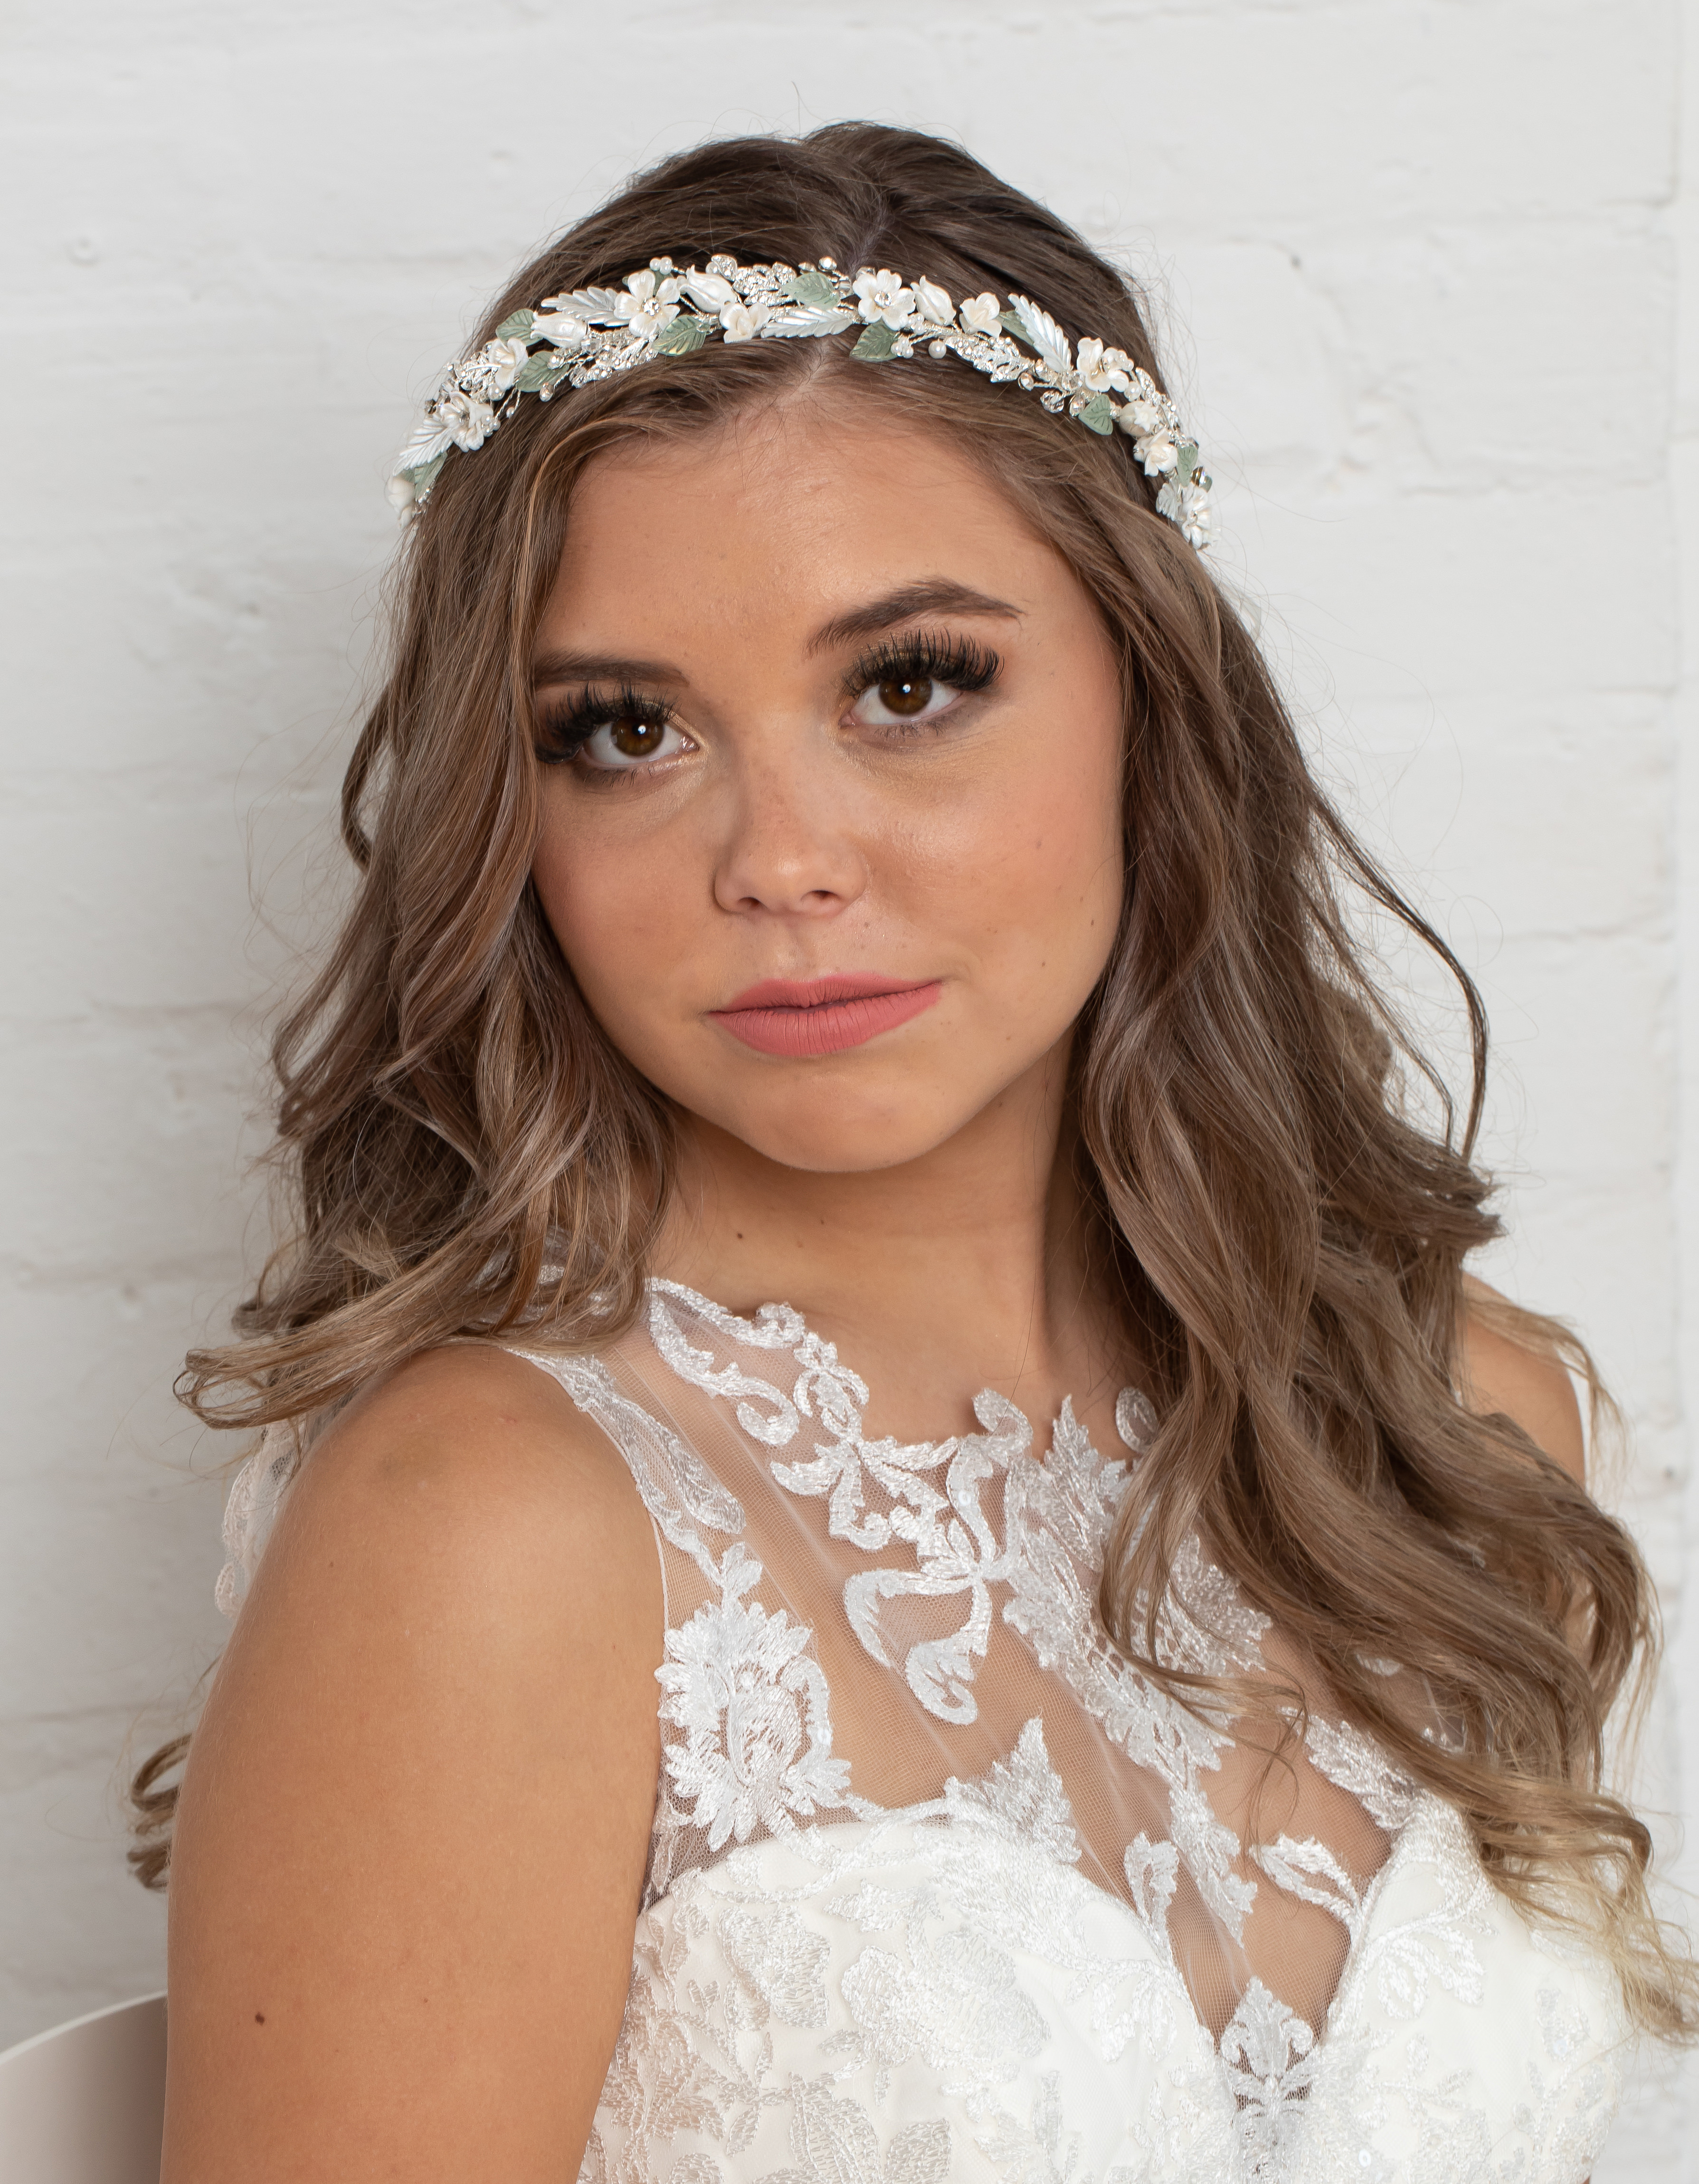 Bridal Classics Headbands, Wreaths & Vines T-4453